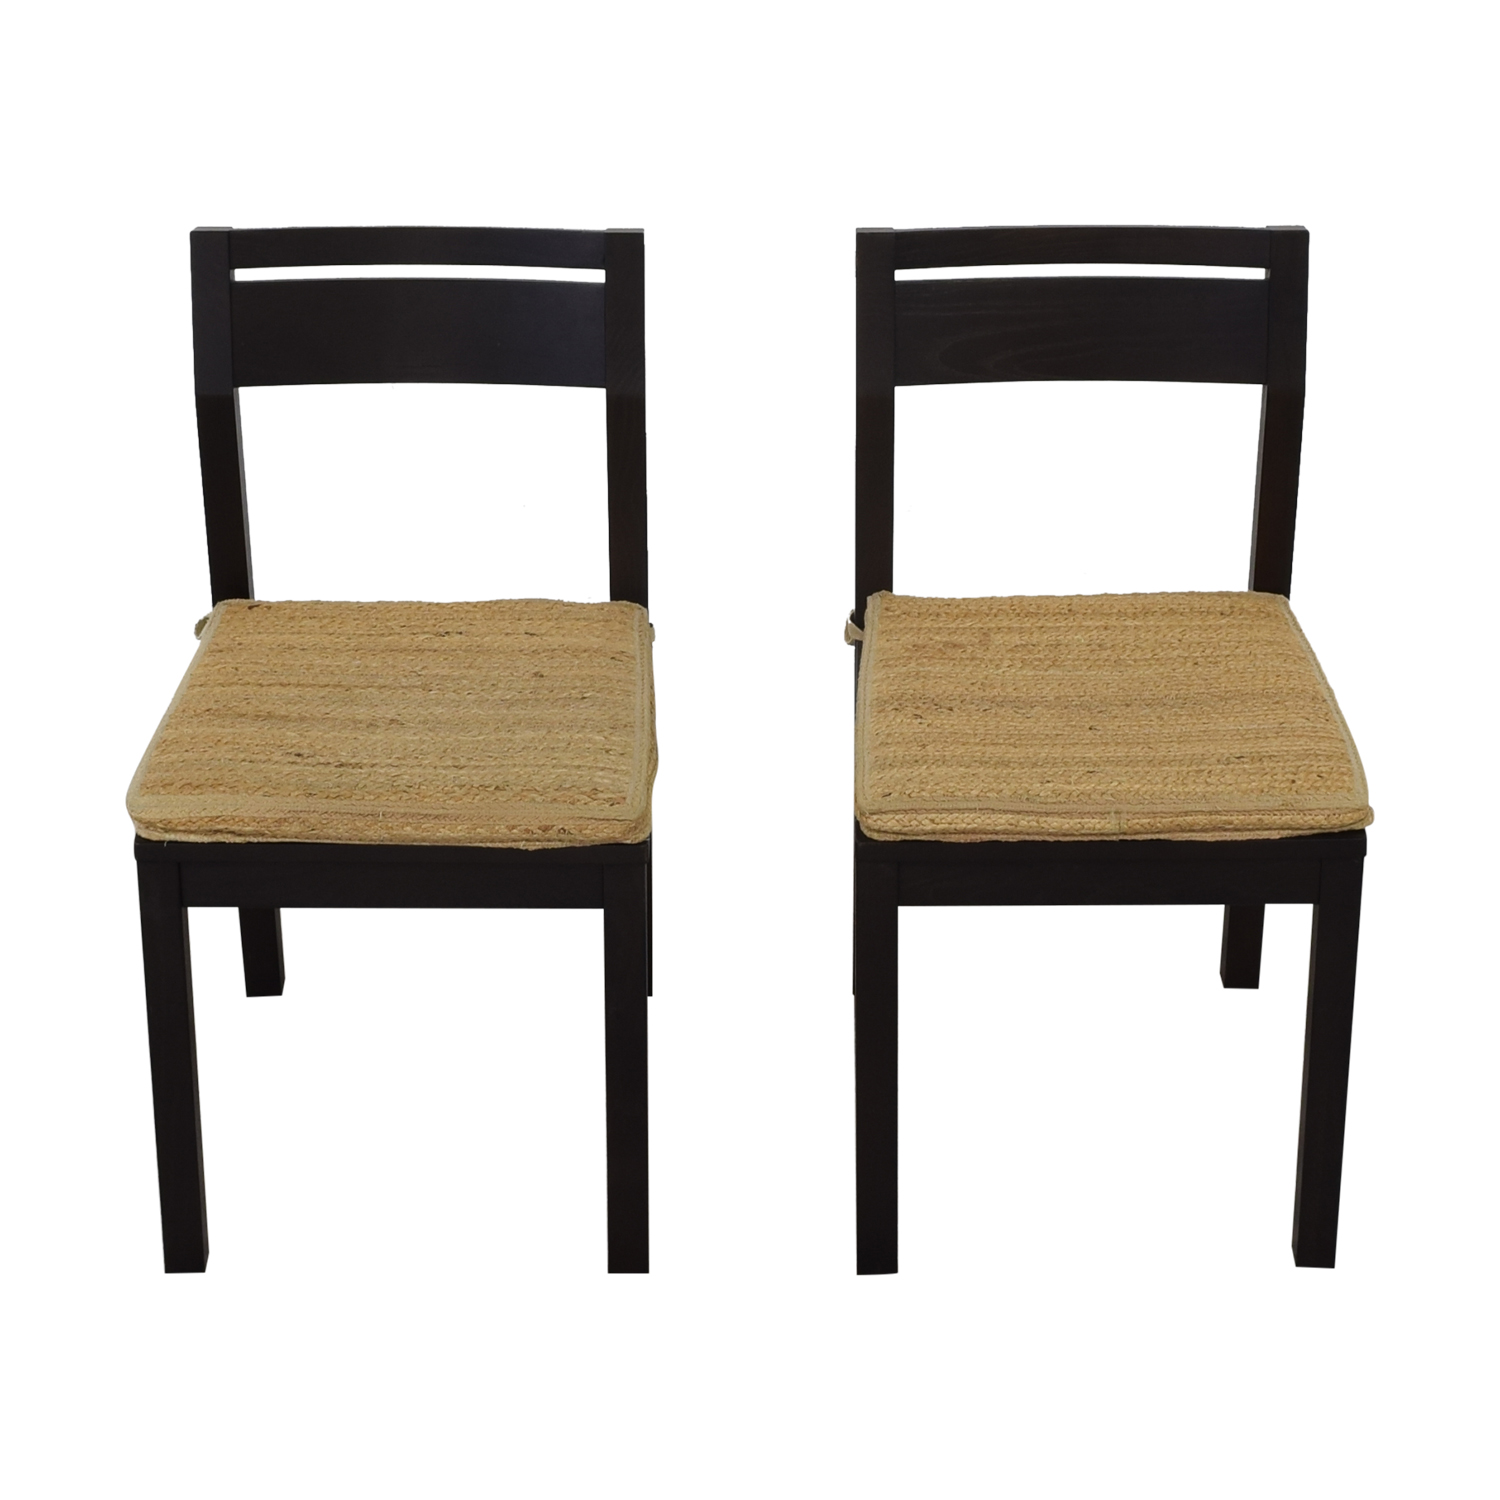 West Elm West Elm Dining Chairs with Woven Cushions price